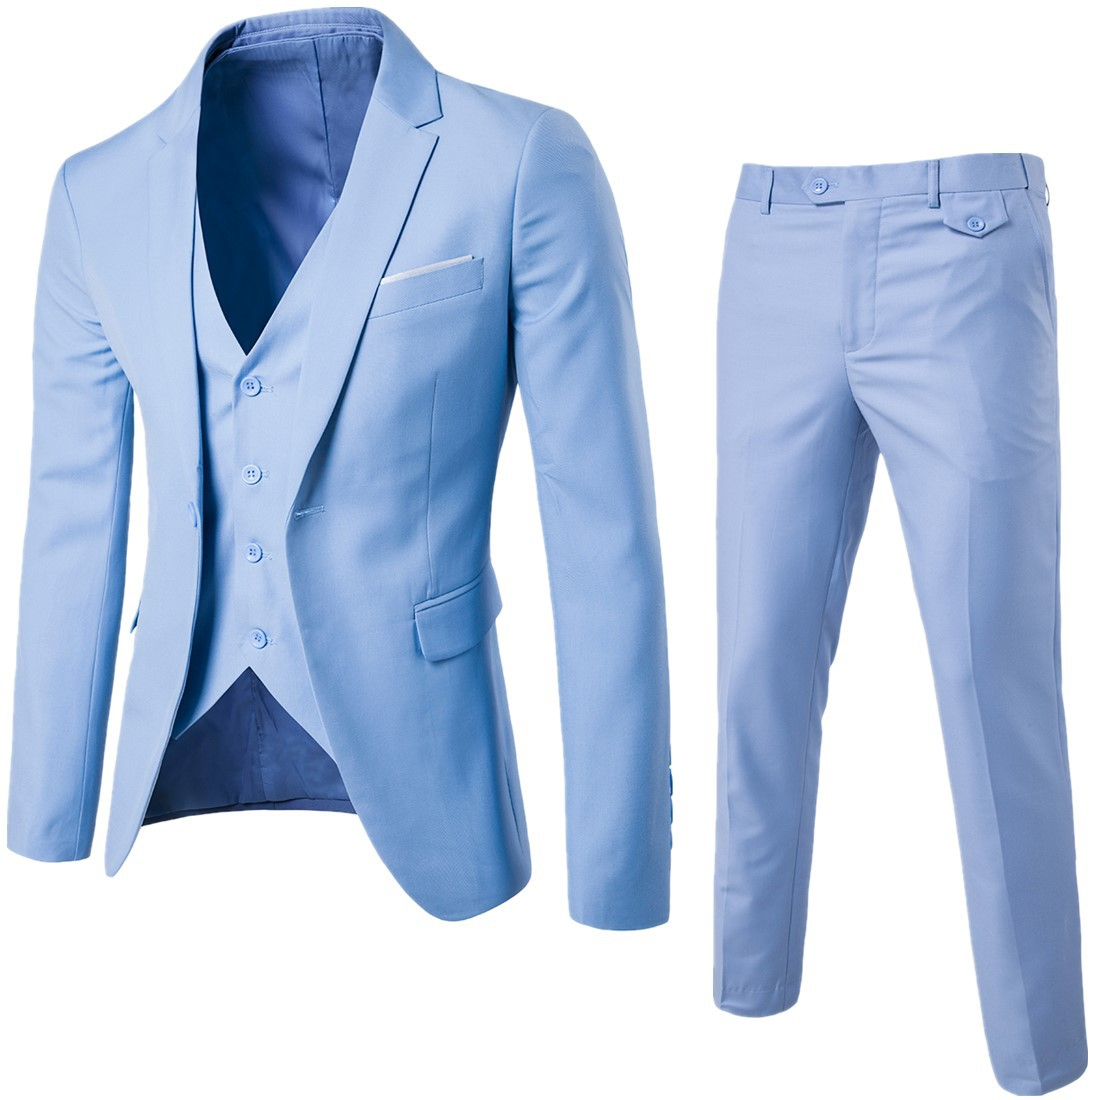 bridegroom-suit-men's-wedding-two-sets--large